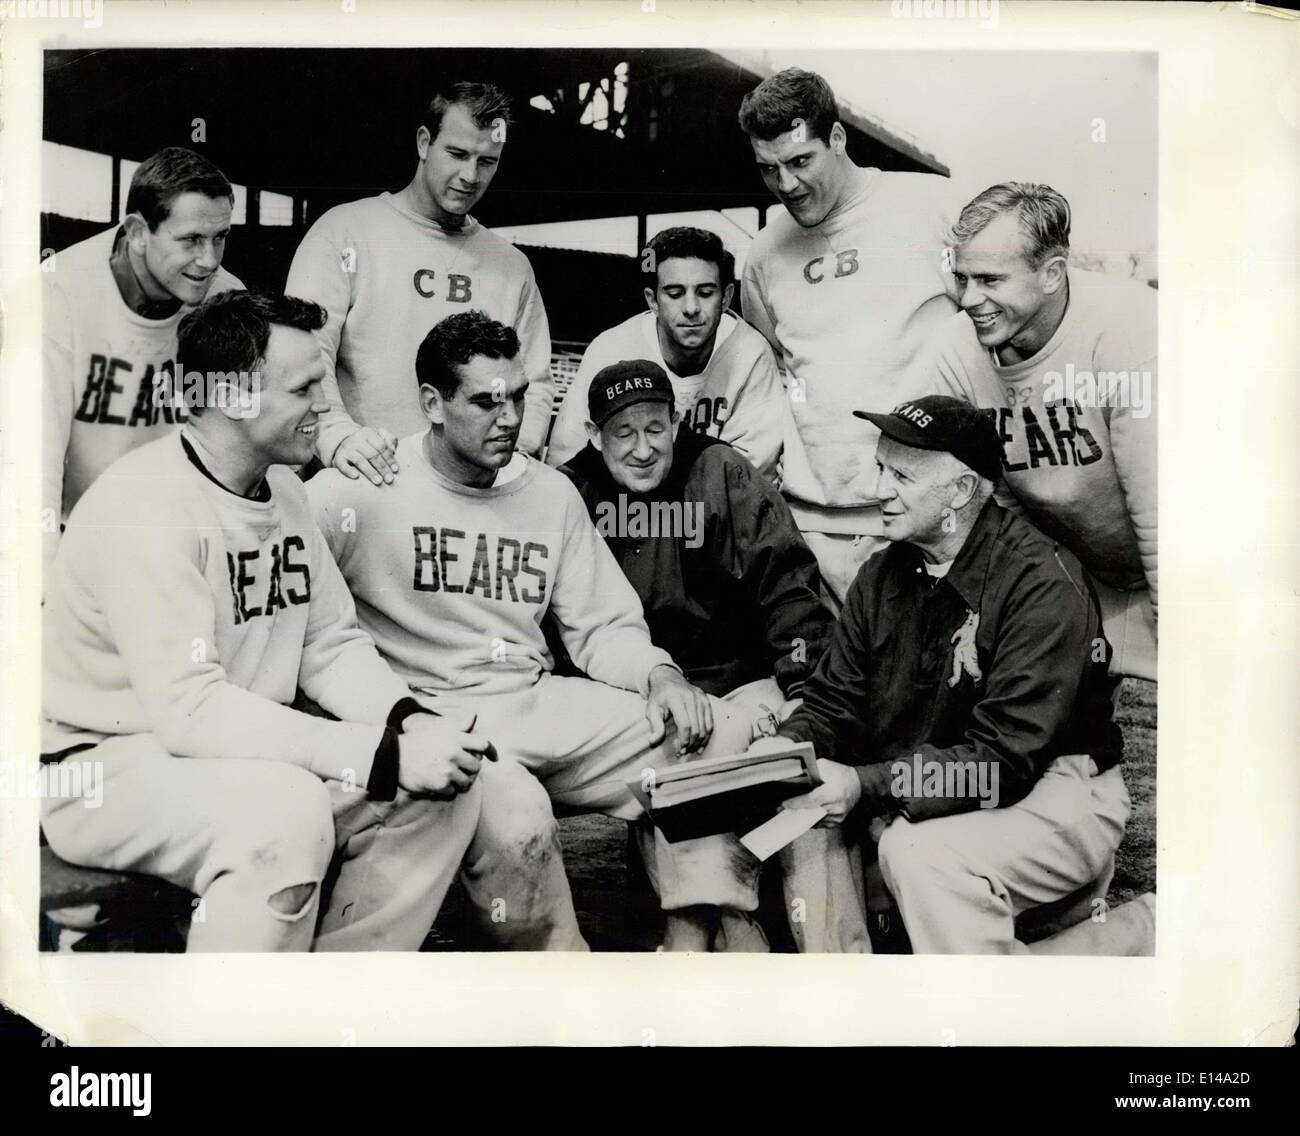 Apr. 17, 2012 - Catholic Members of Professional Football Team: Chicago: Catholic members of the Chicago ''Bears'' Professional - Stock Image